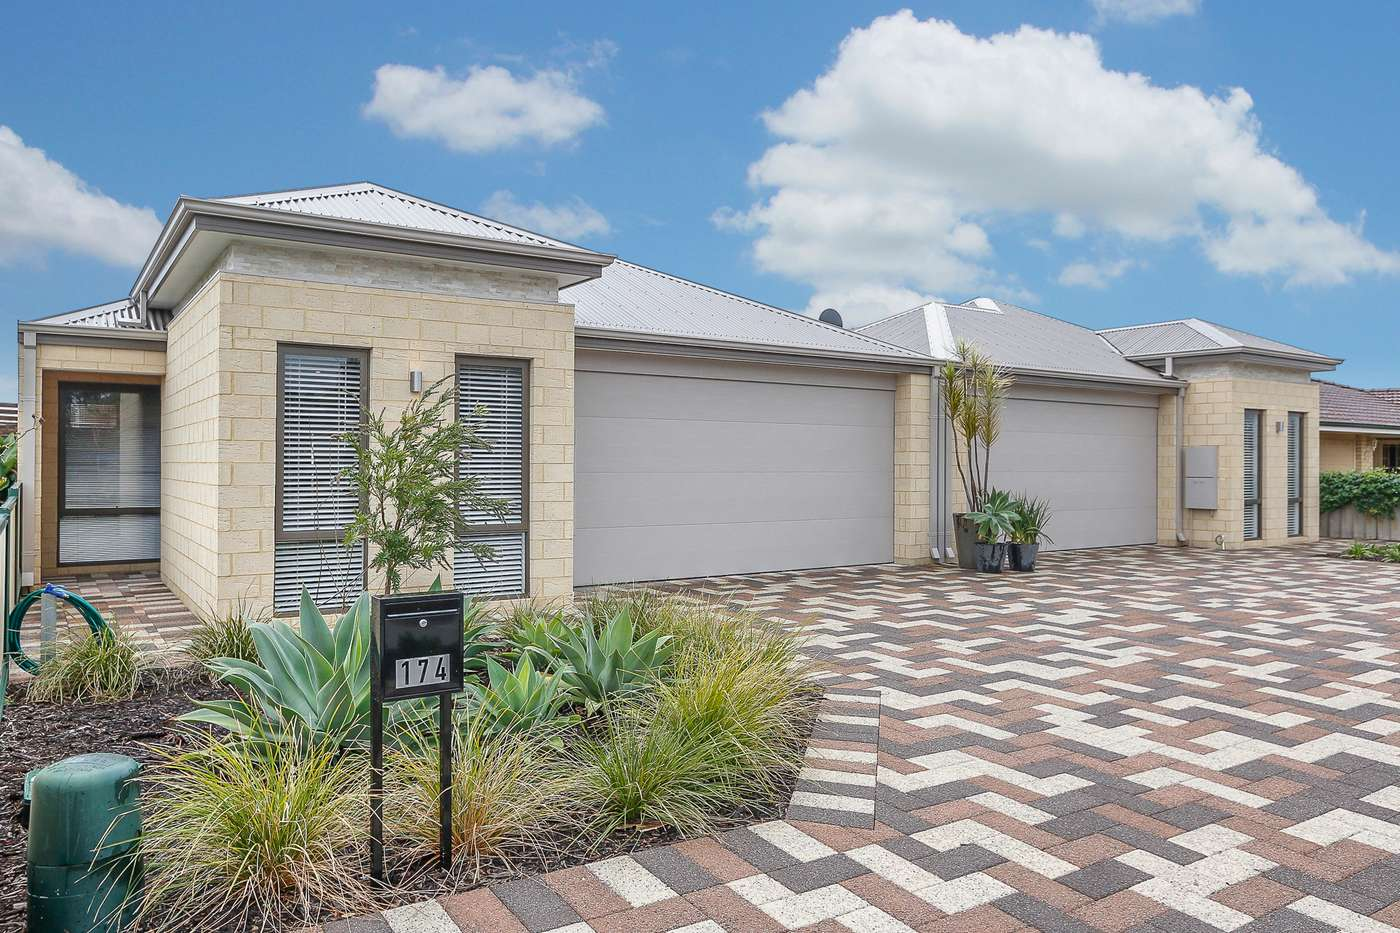 Main view of Homely house listing, 174 Walter Road East, Eden Hill, WA 6054